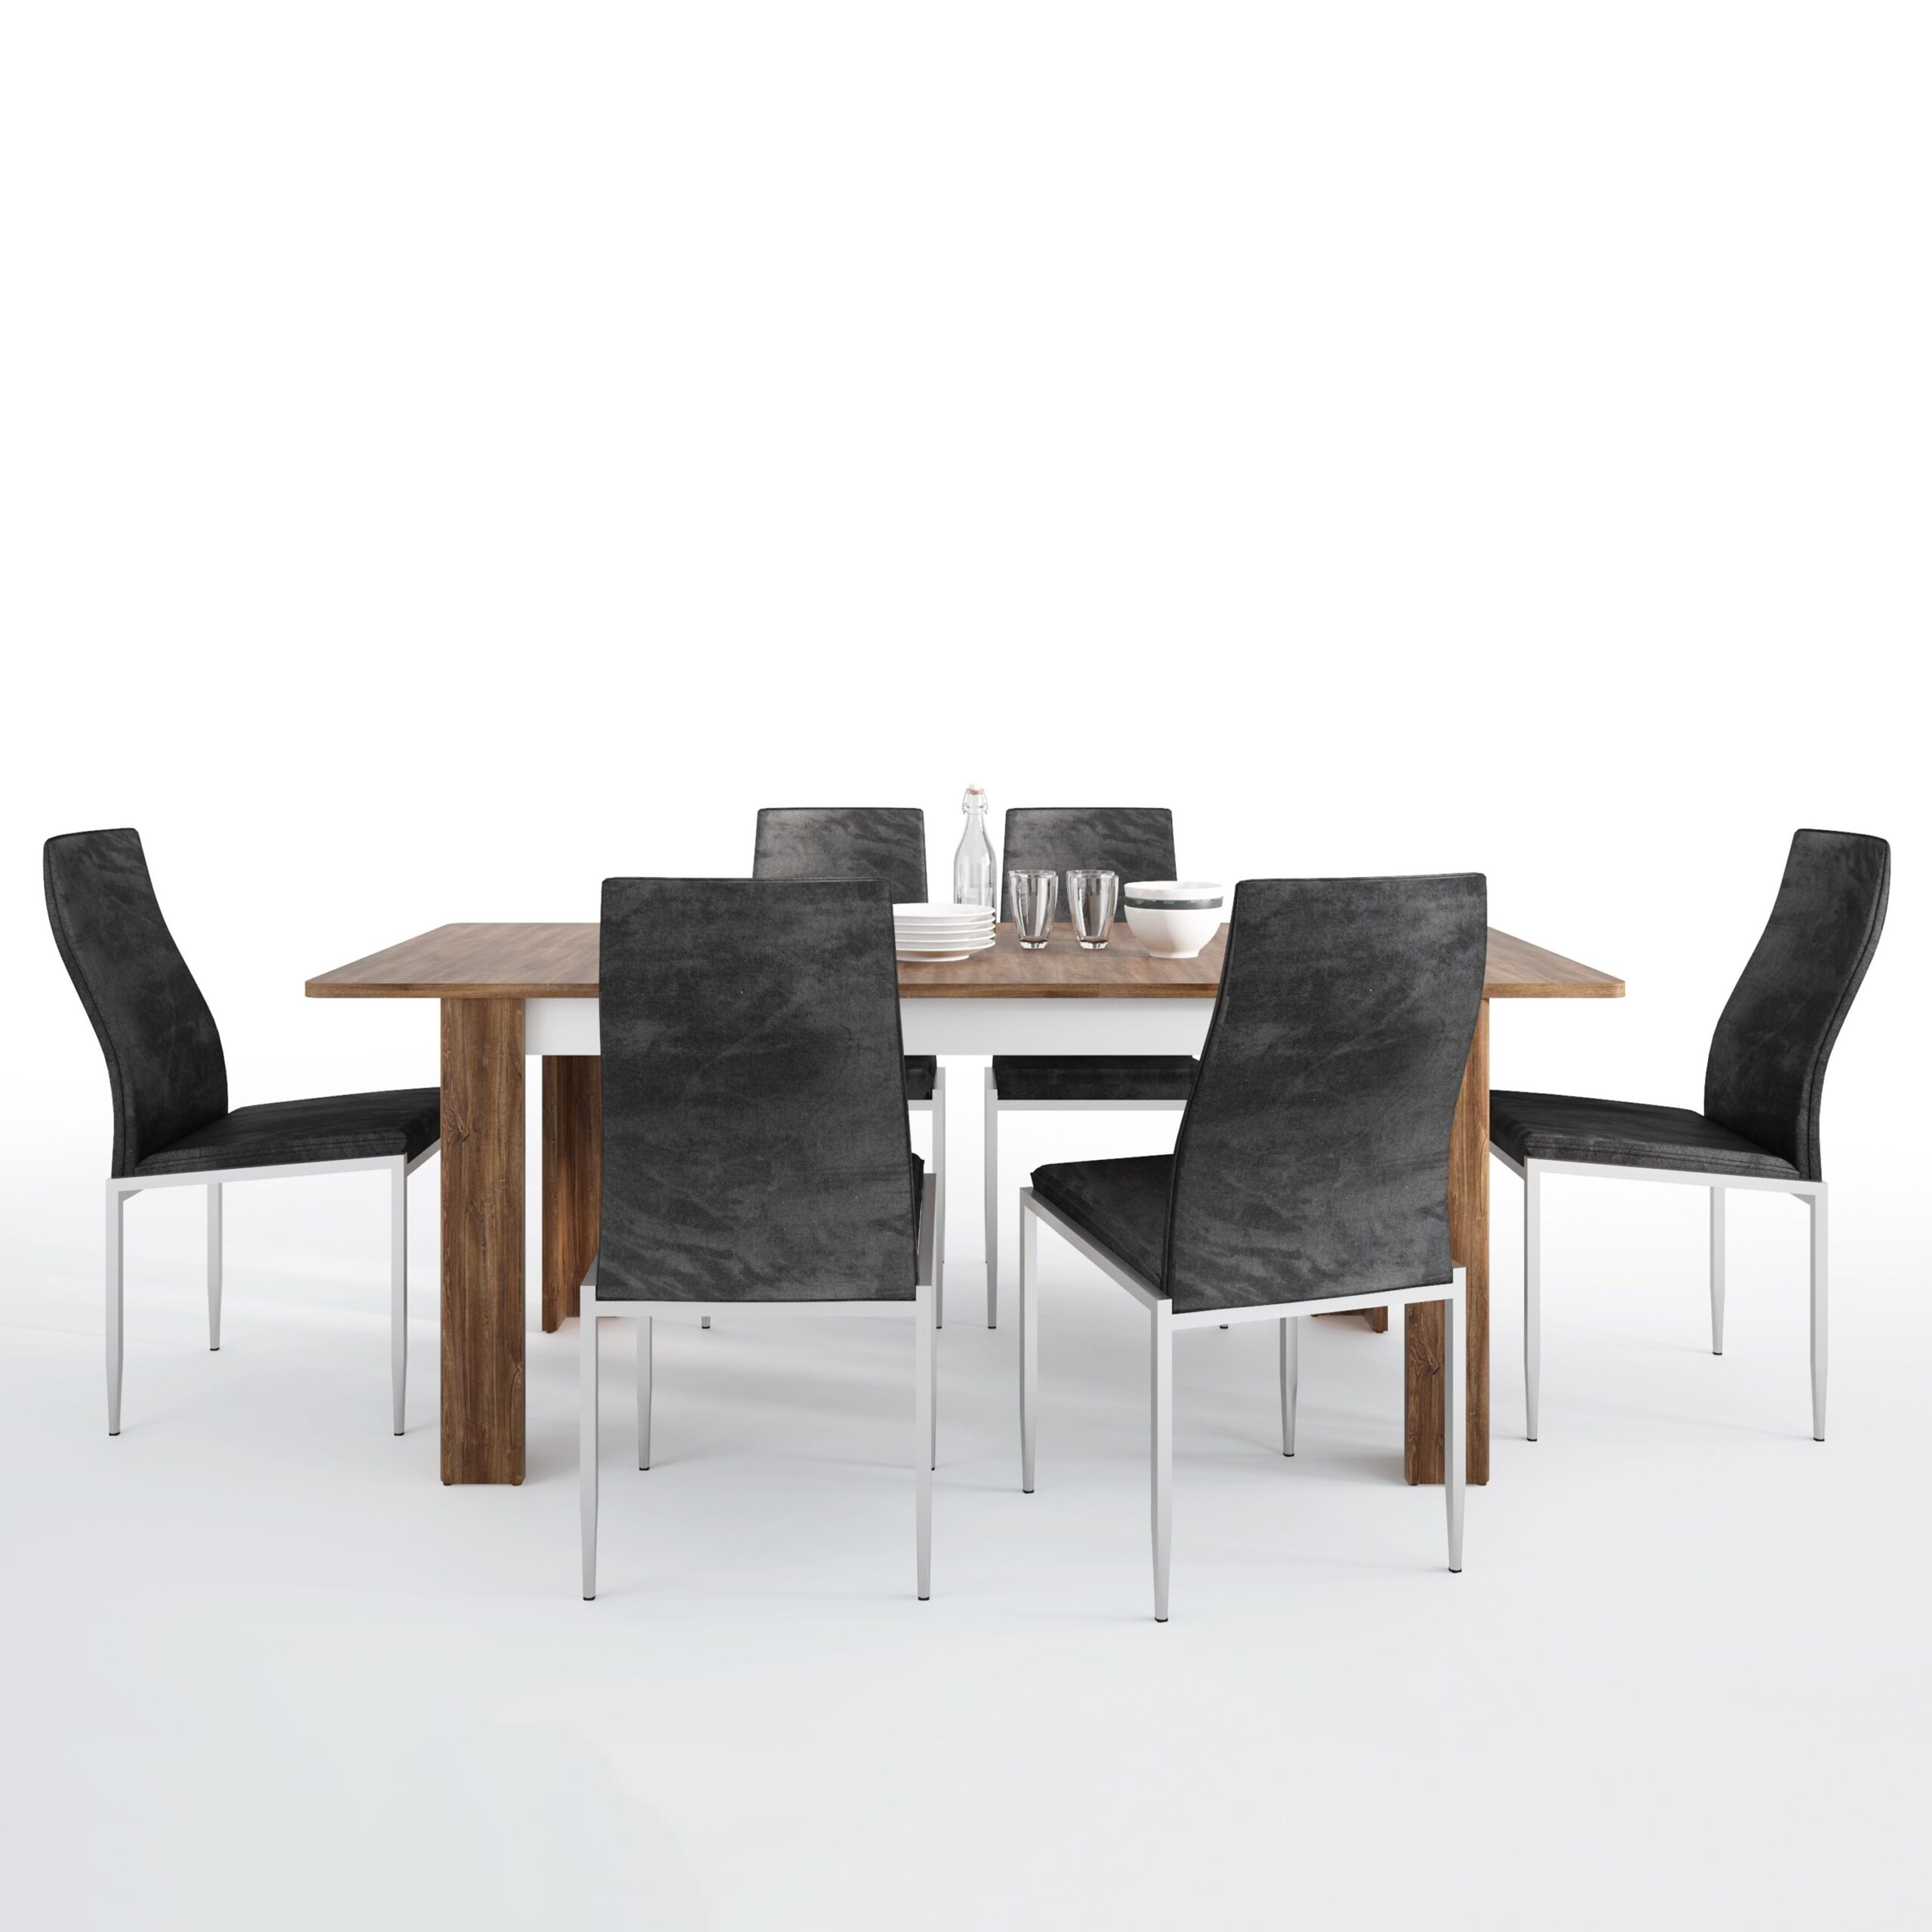 Delly Dining set package Delly extending dining table + 4 Lillie High Back Chair Black.